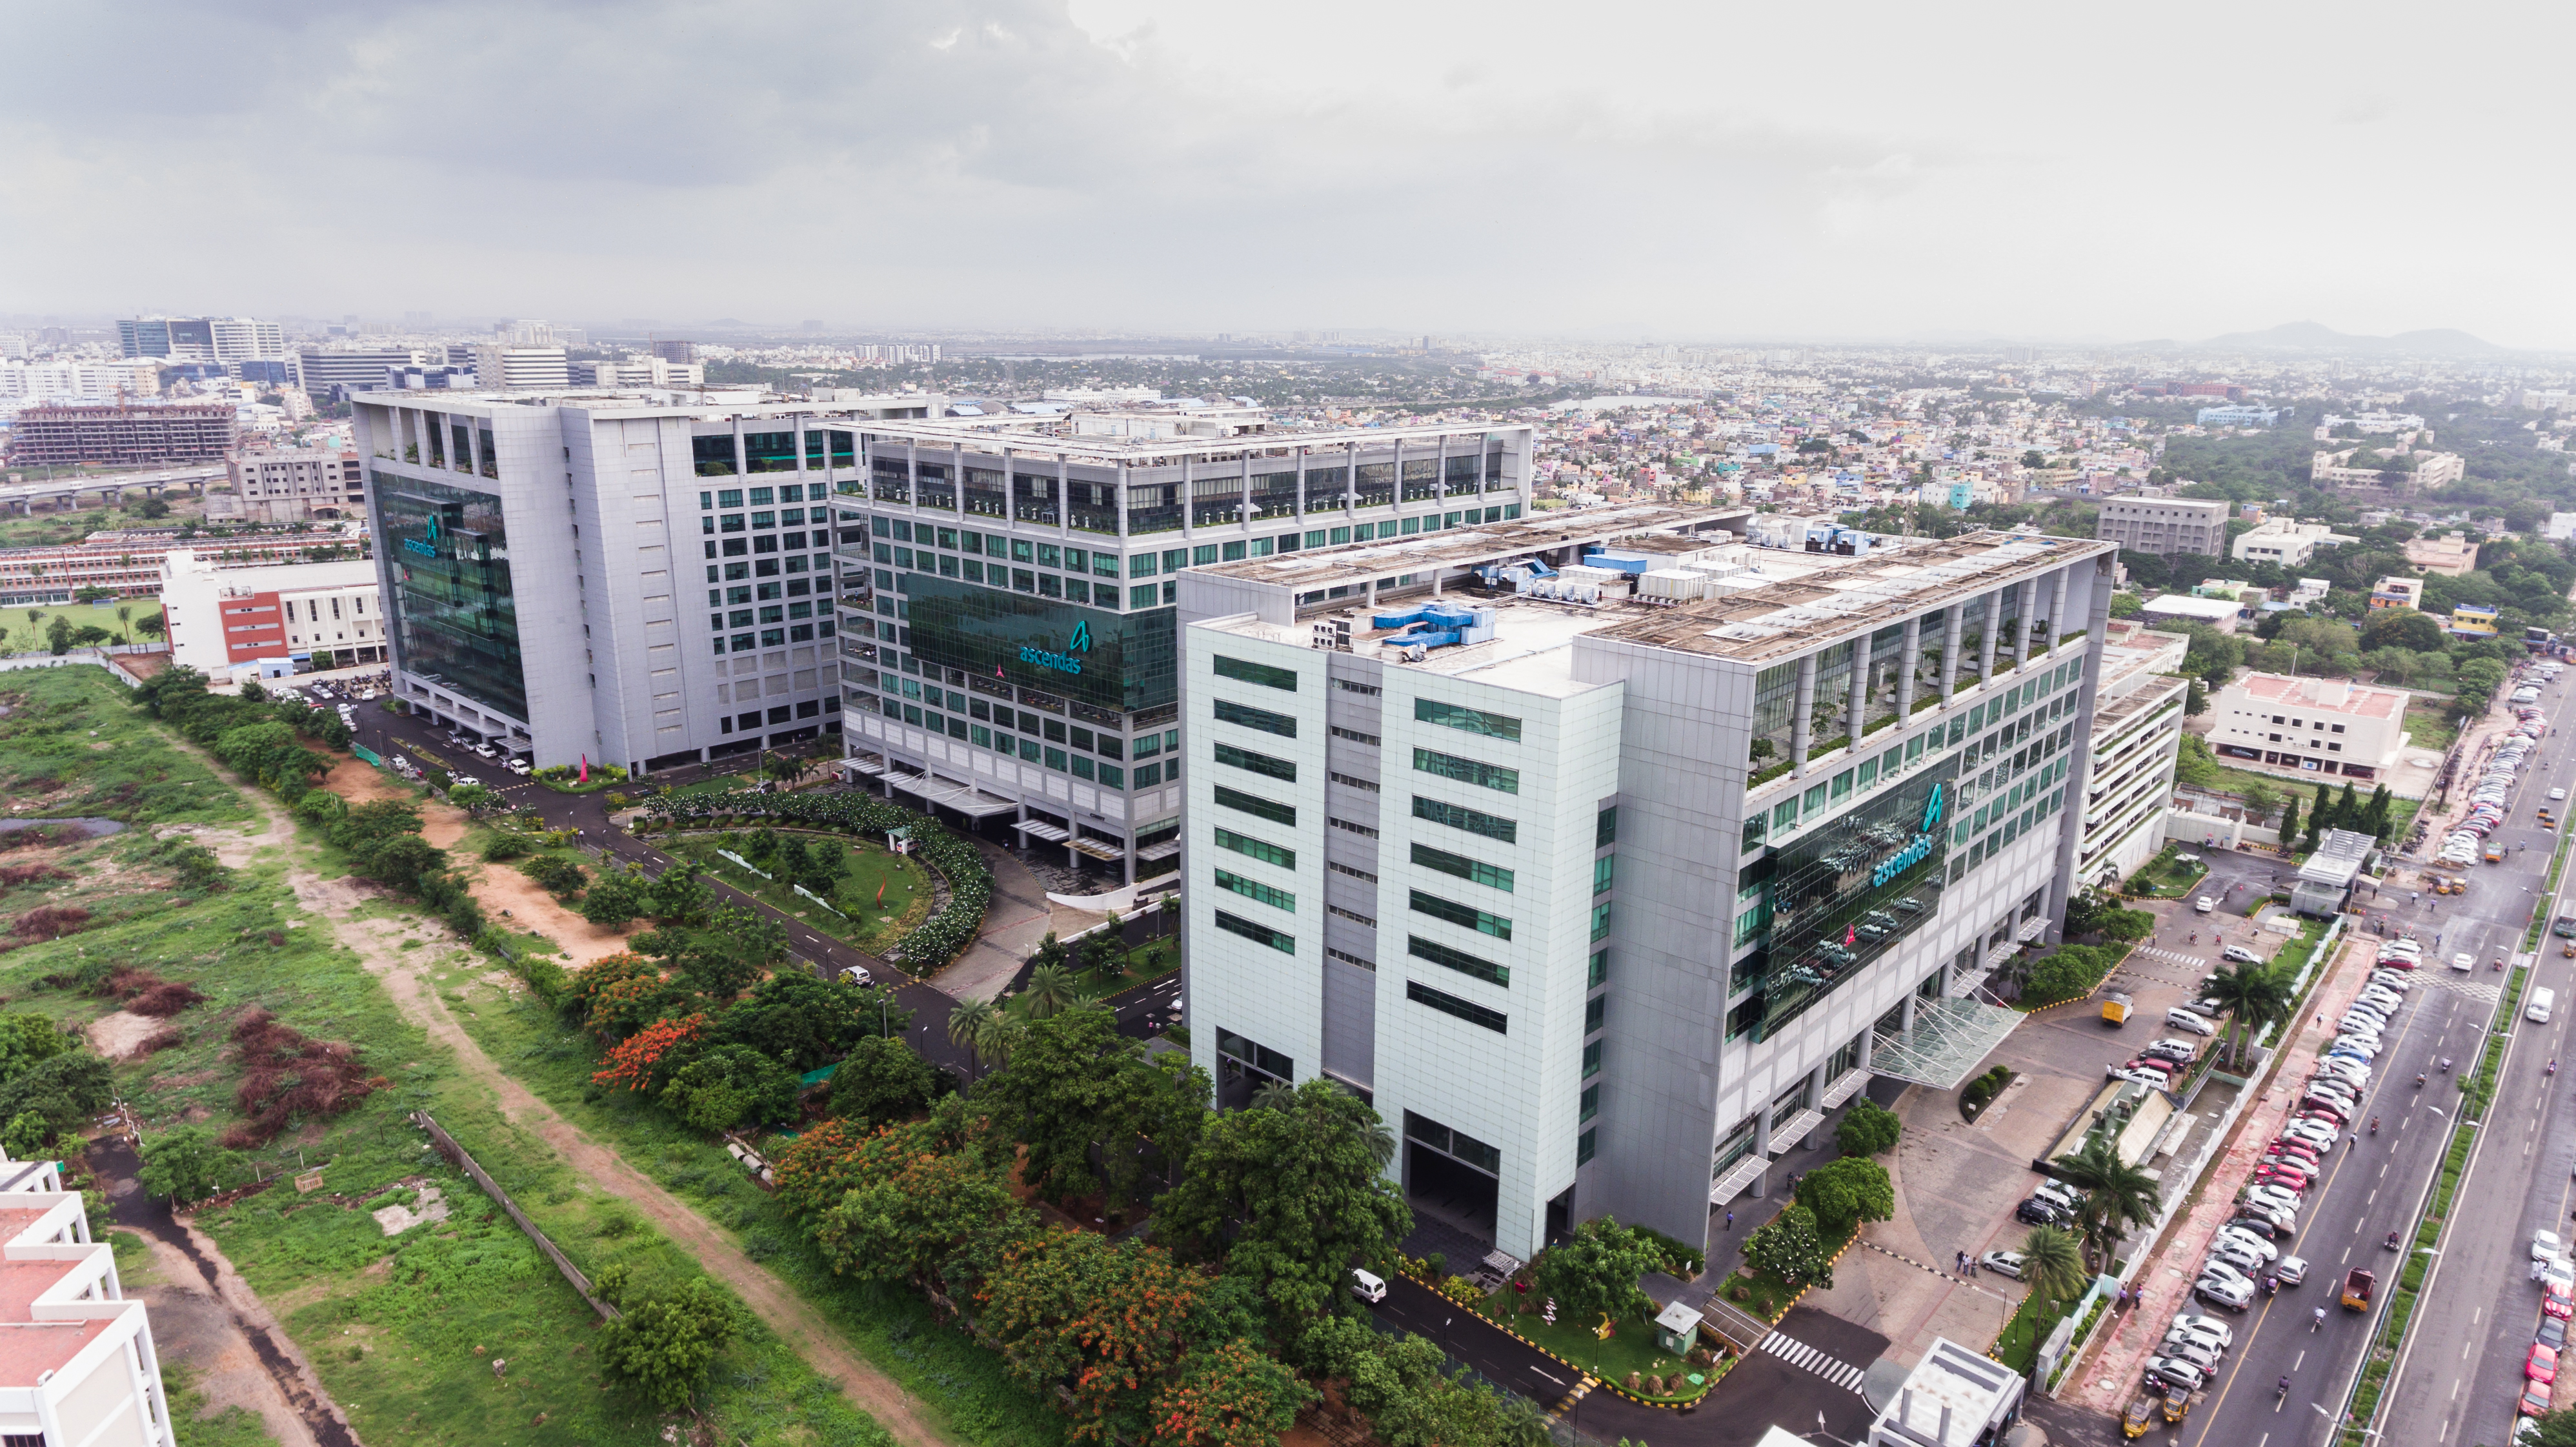 a-iTrust's portfolio comprises seven world-class IT business parks and one logistics park in India.